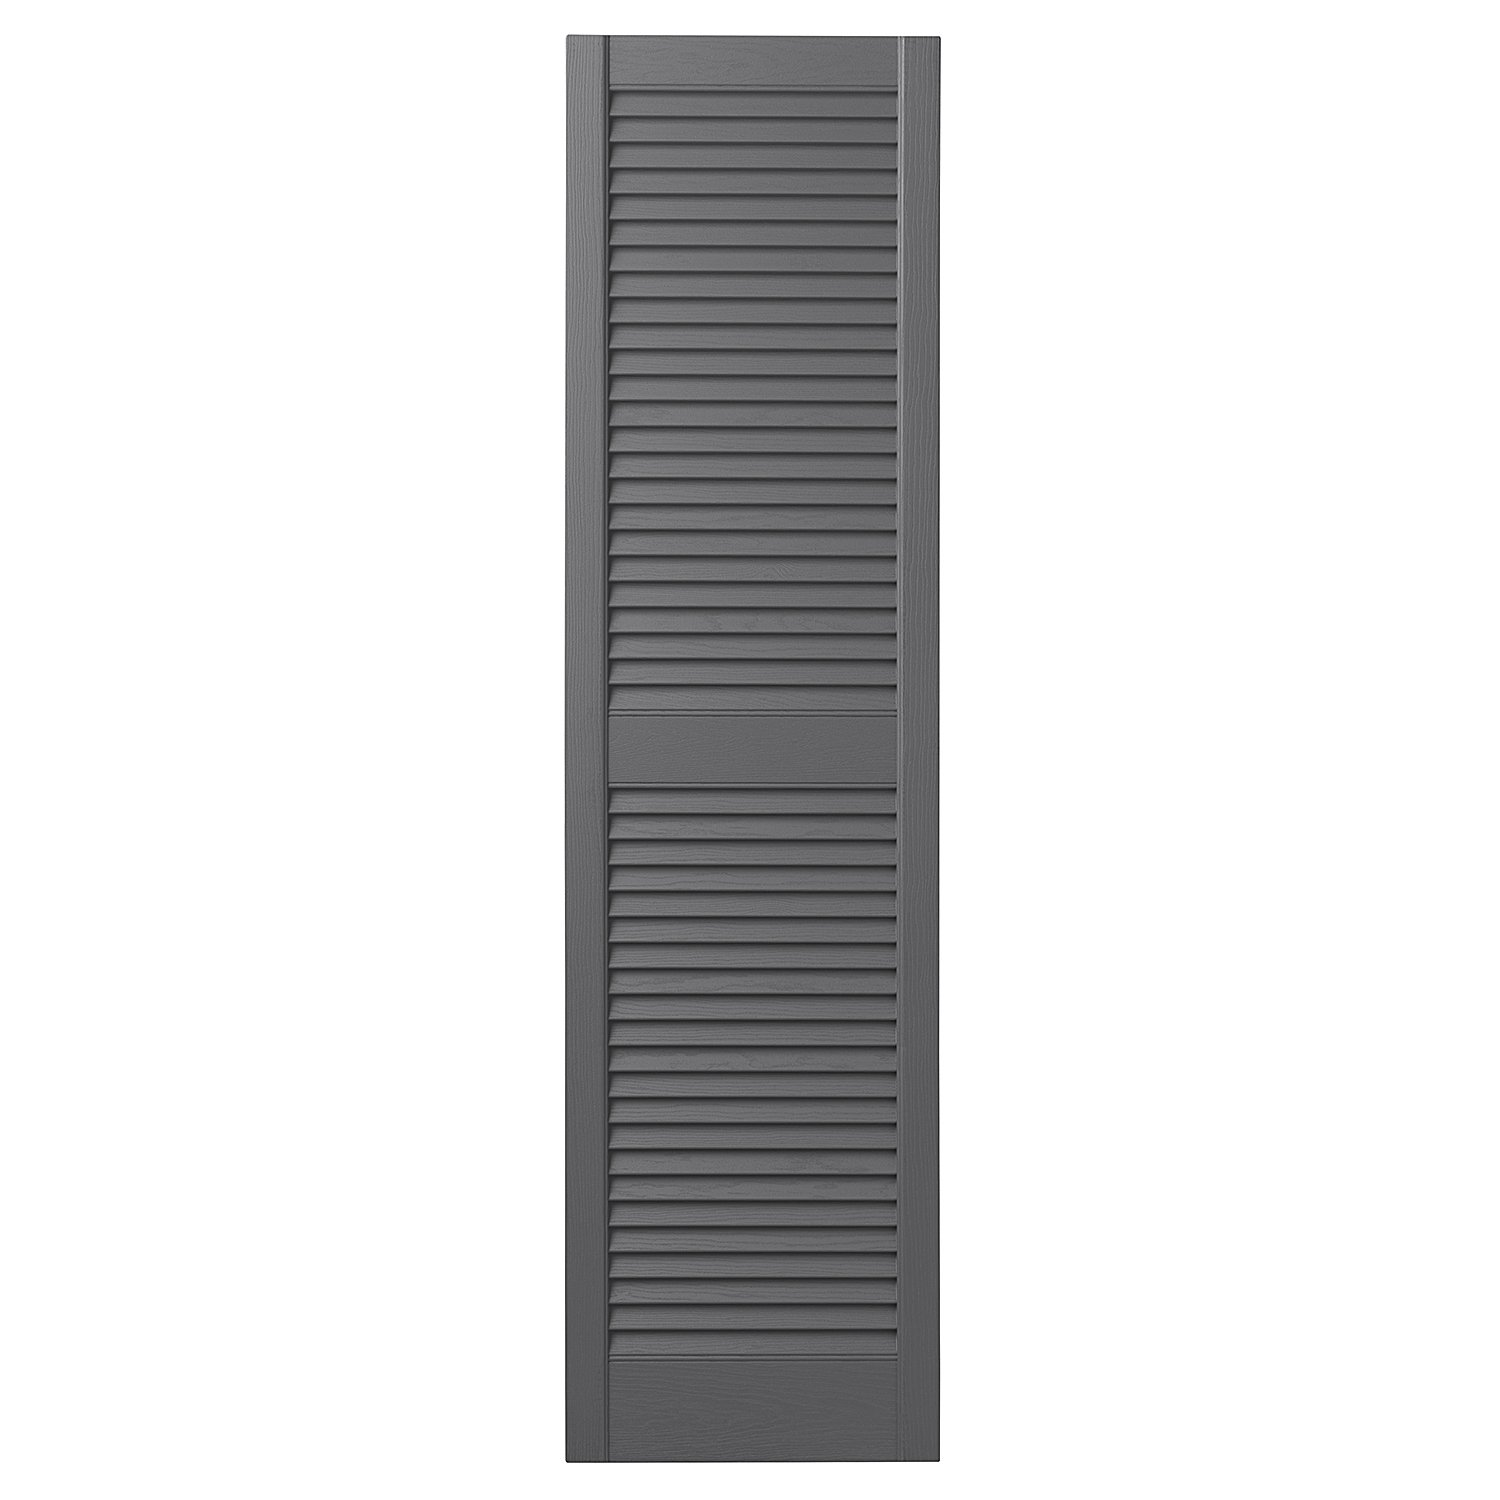 Ply Gem Shutters and Accents VINLV1255 16 Louvered Shutter, 12'', Gray